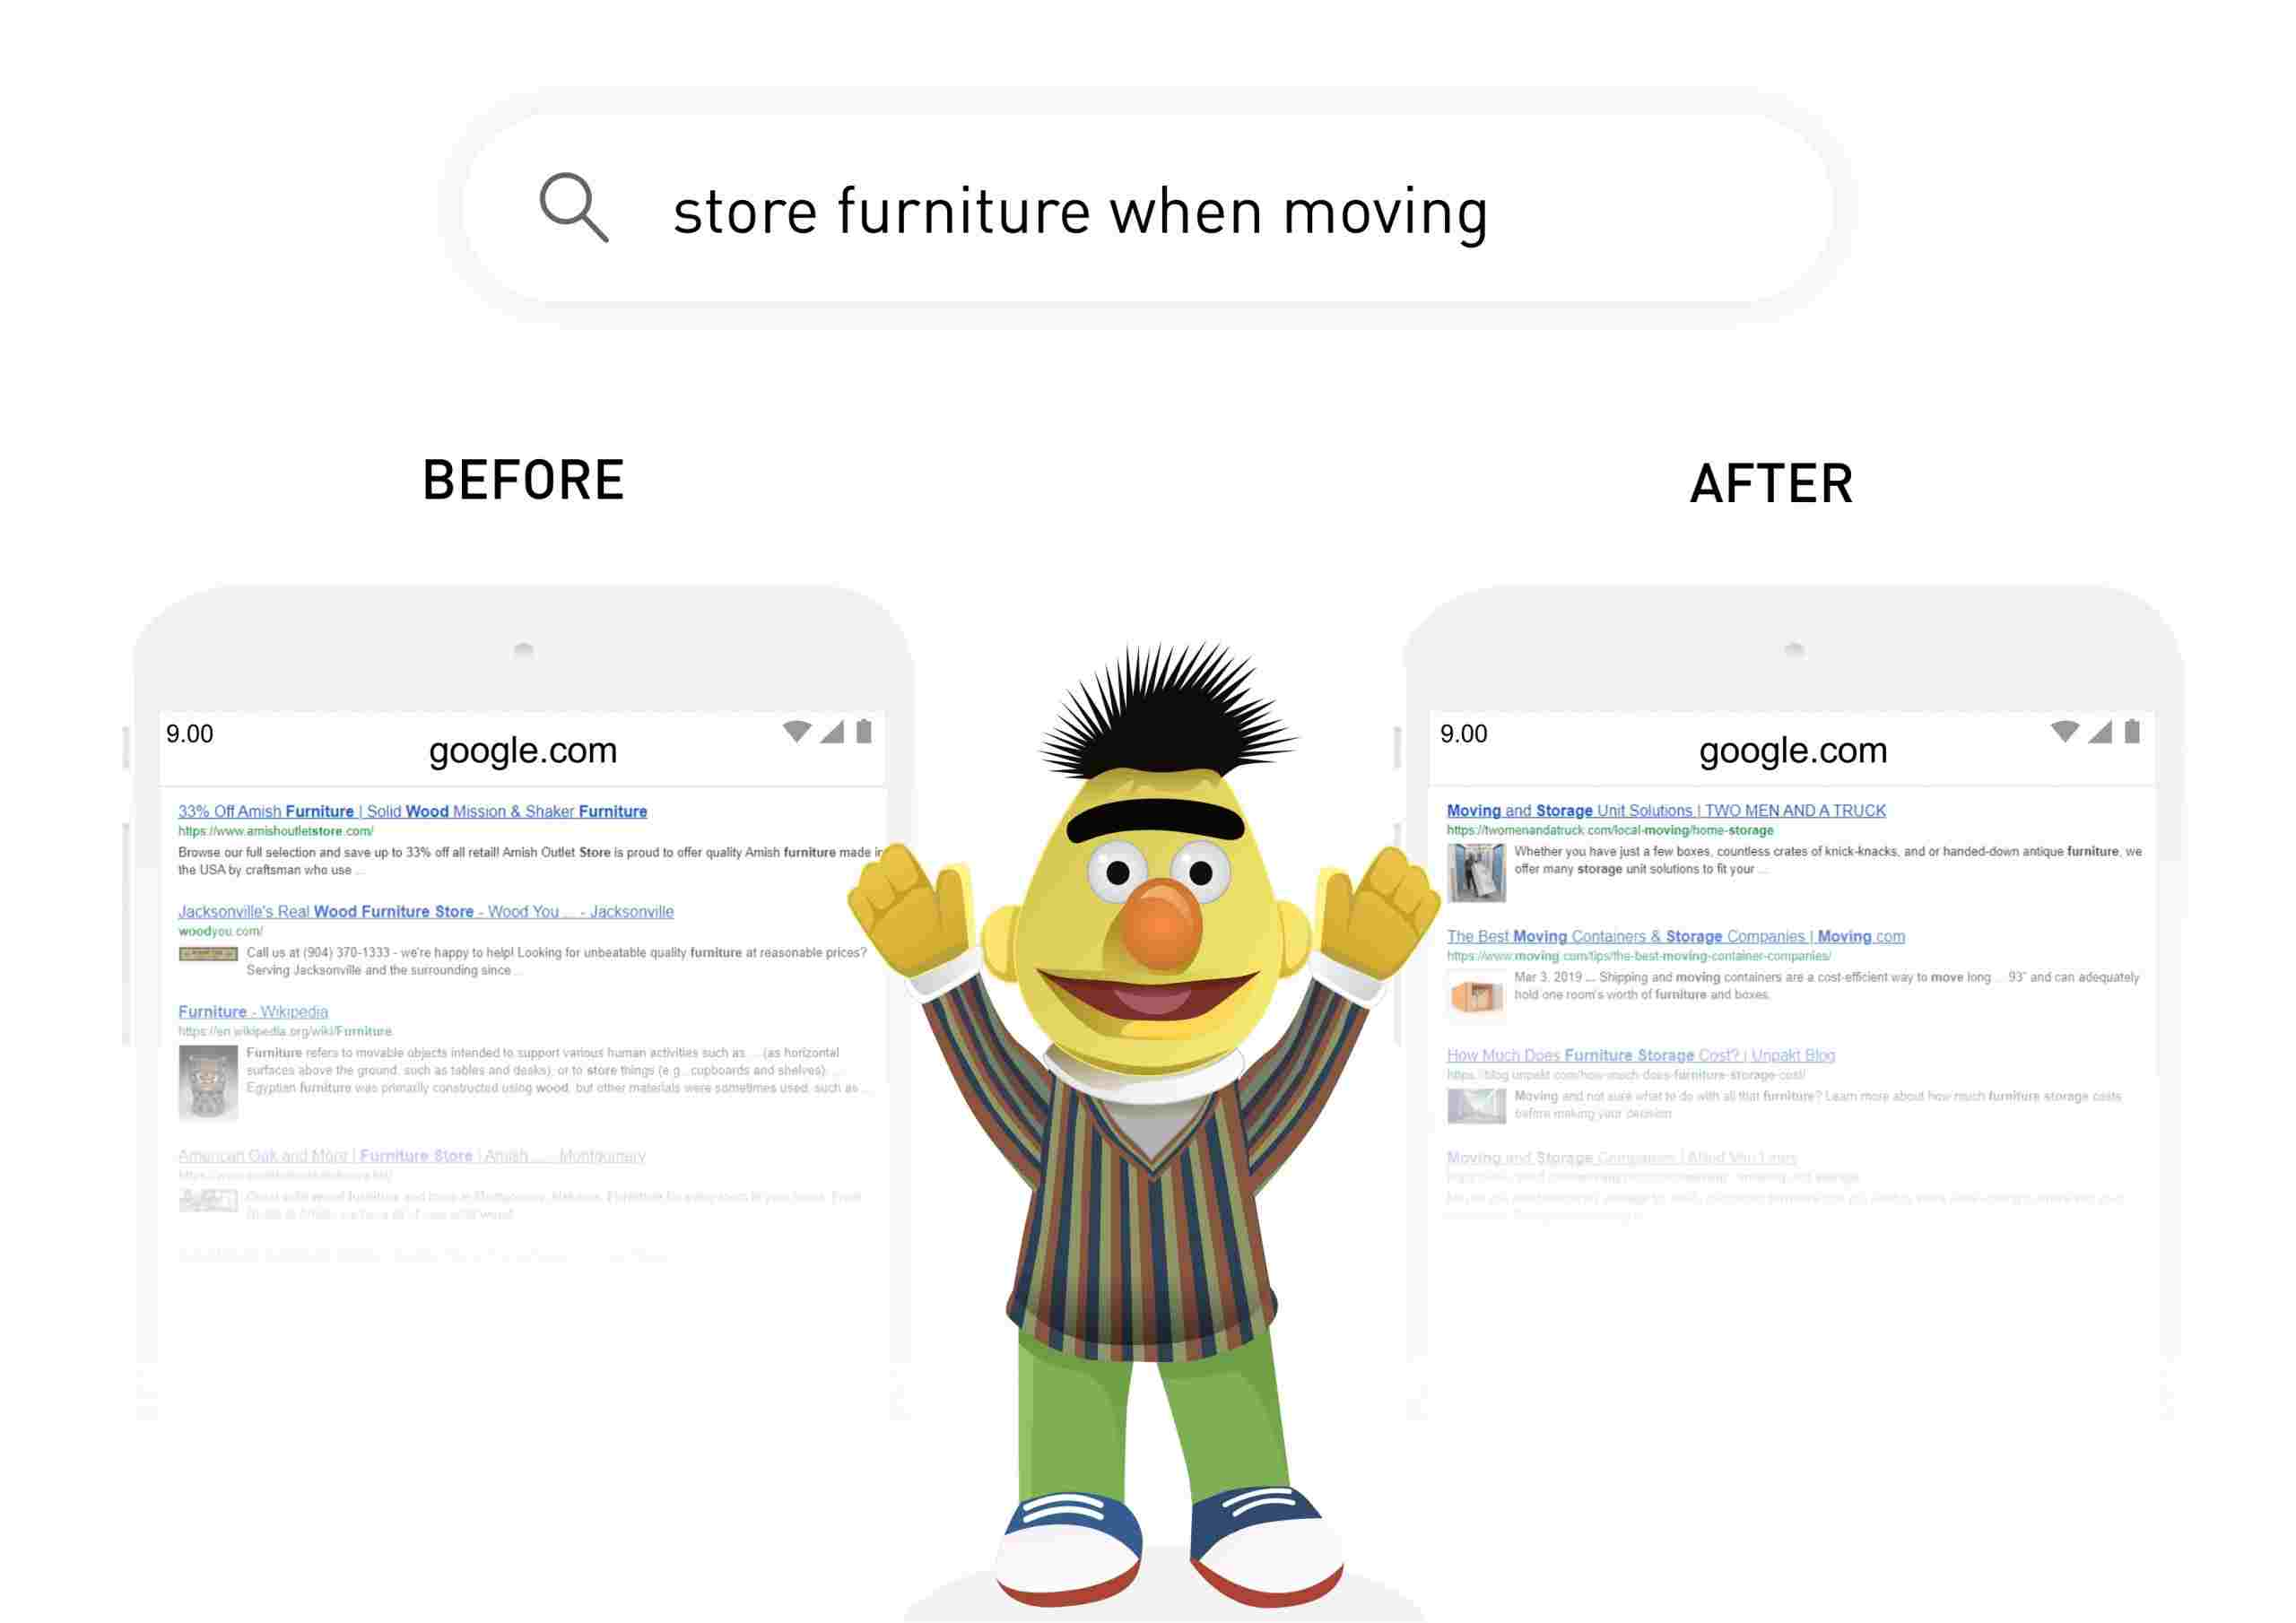 Google BERT algorithm and its effect on Google search results